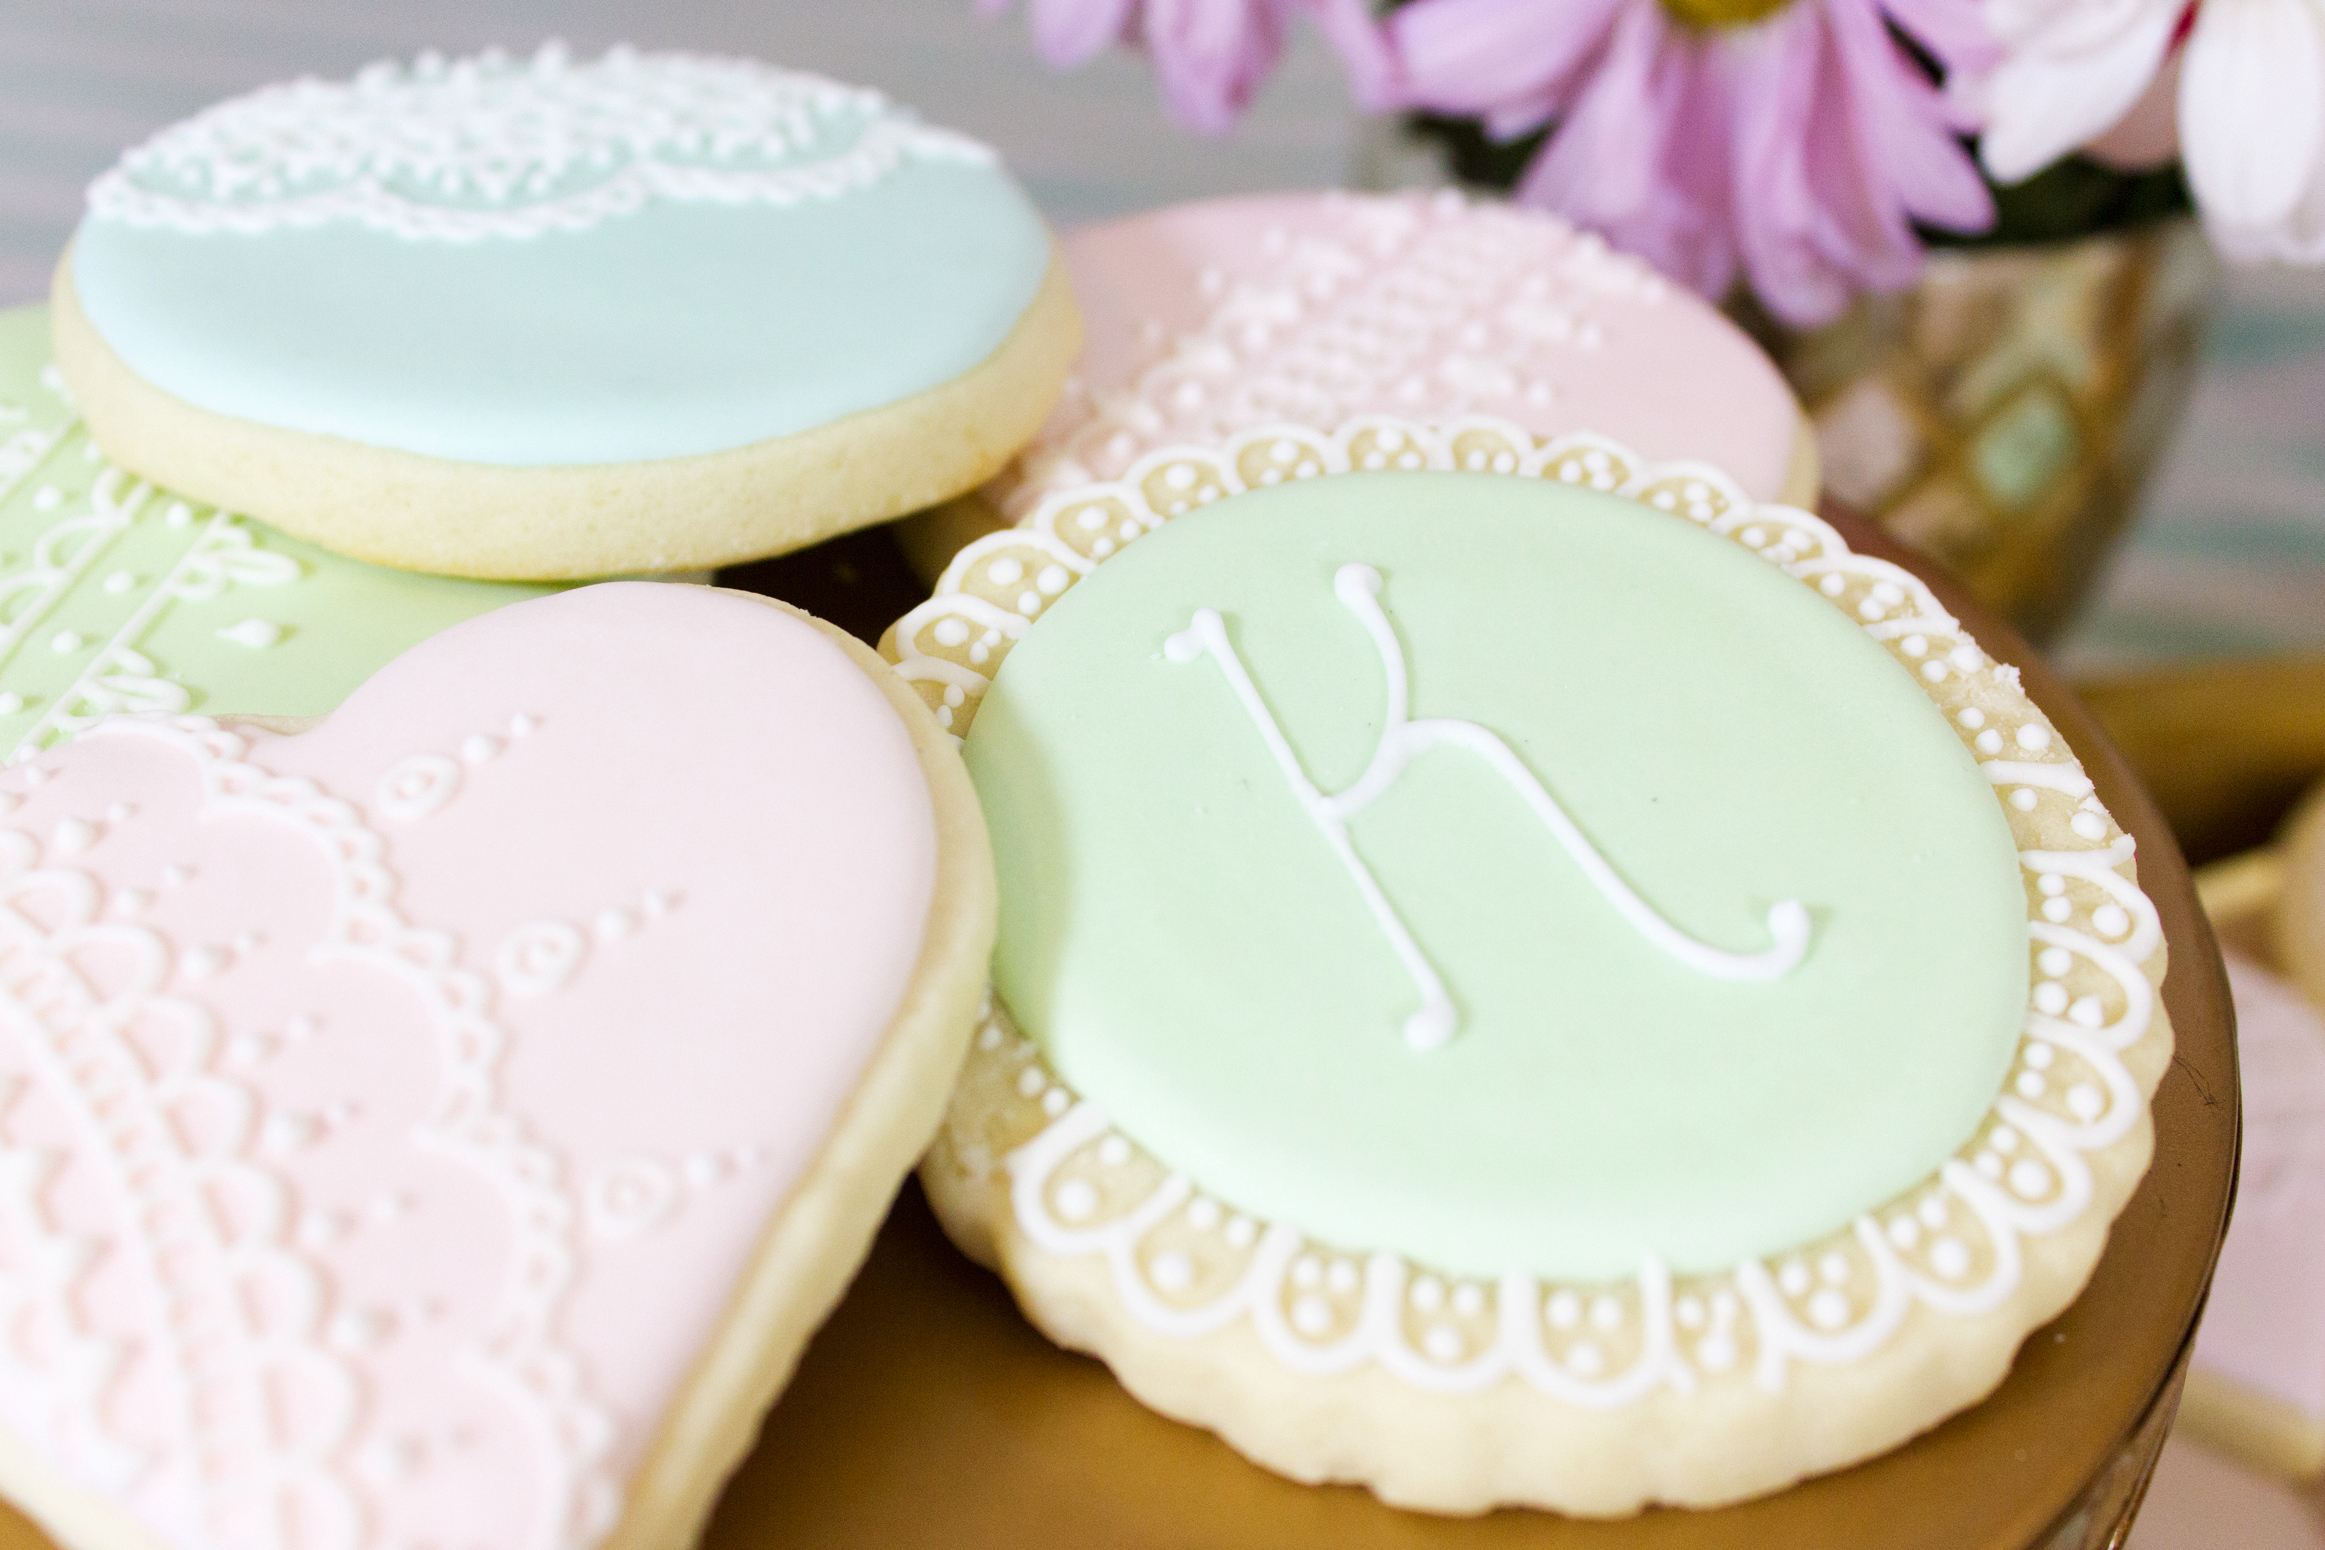 Fancy monogram cookies by Cookies start with C